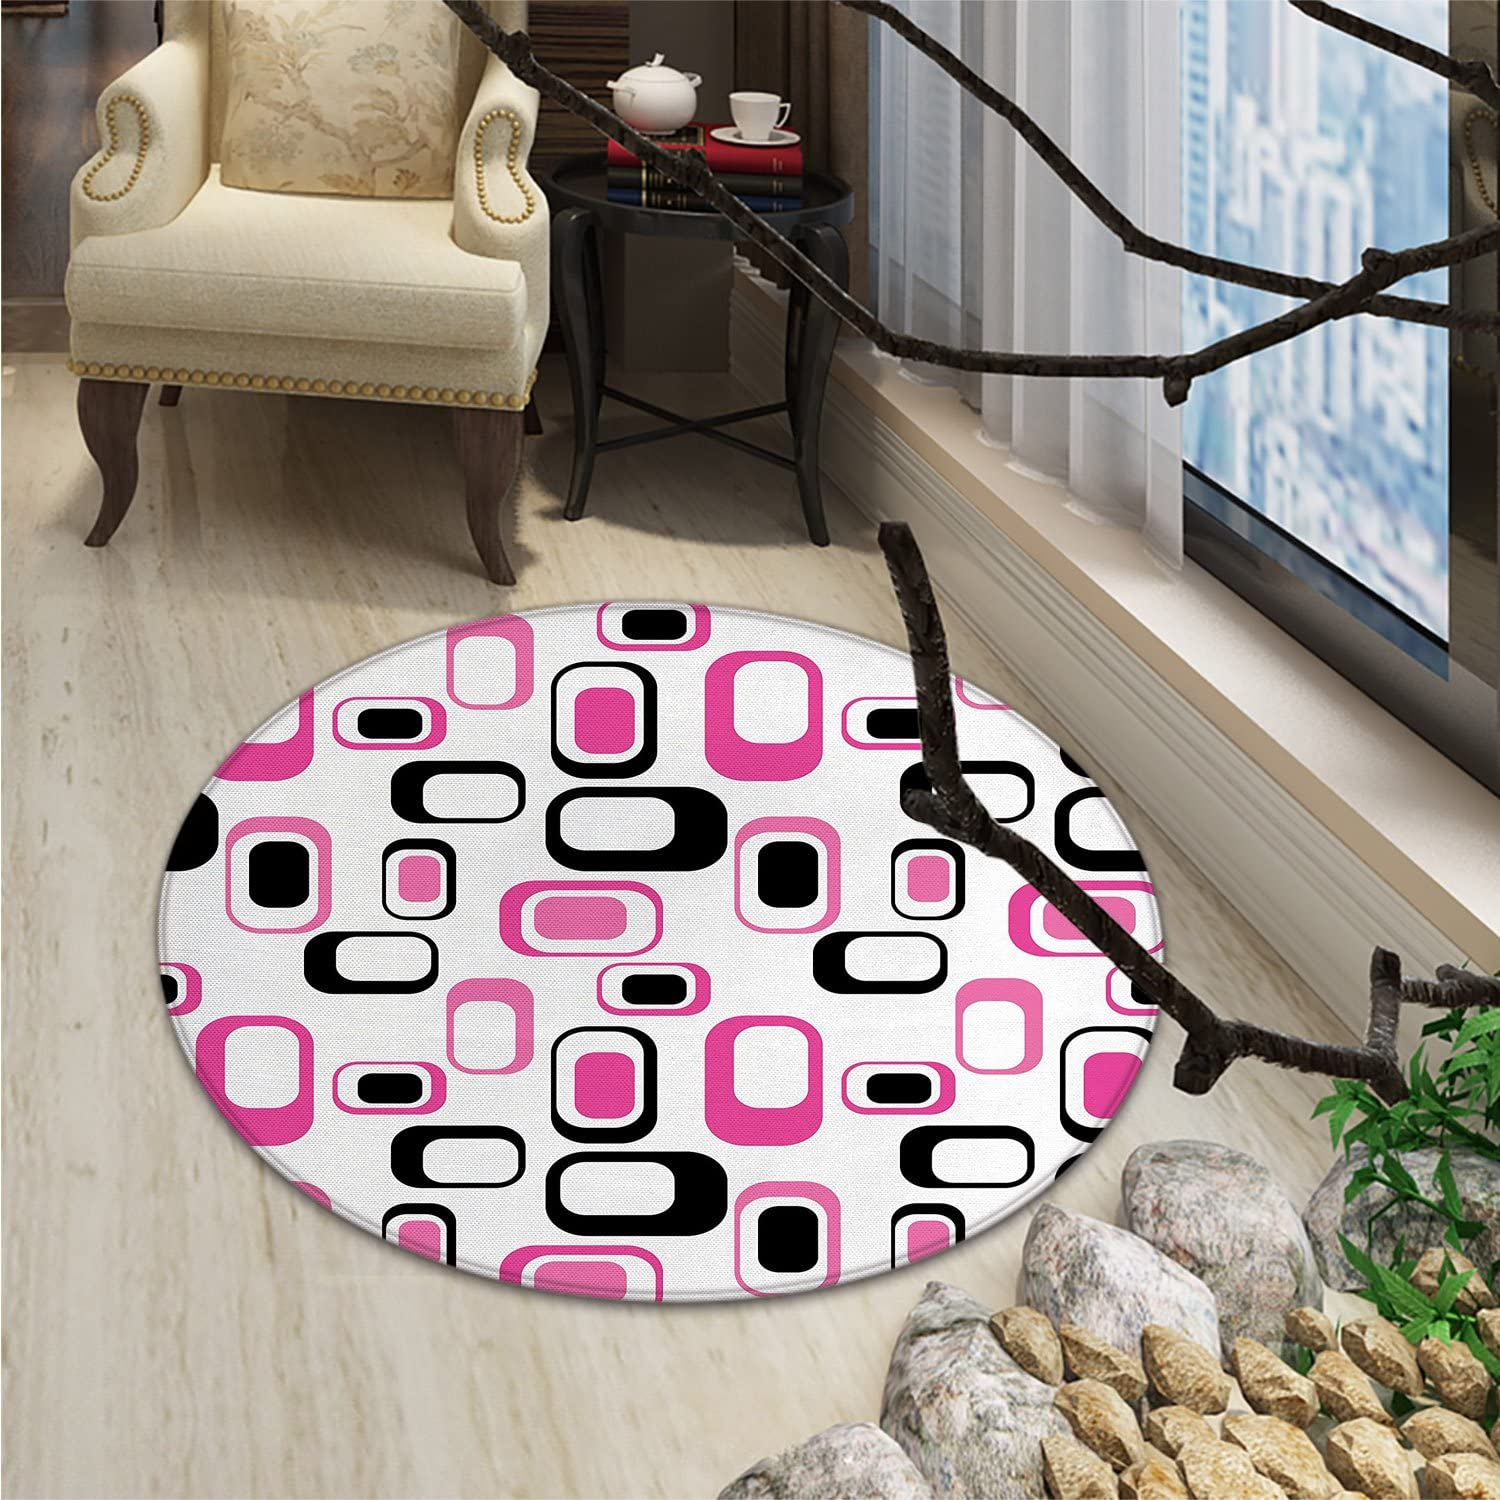 Geometric Round Rug Kid Carpet Sixties Ornamental Old Fashioned Shapes in Vintage Design Elements ImageOriental Floor and Carpets Pink White Black